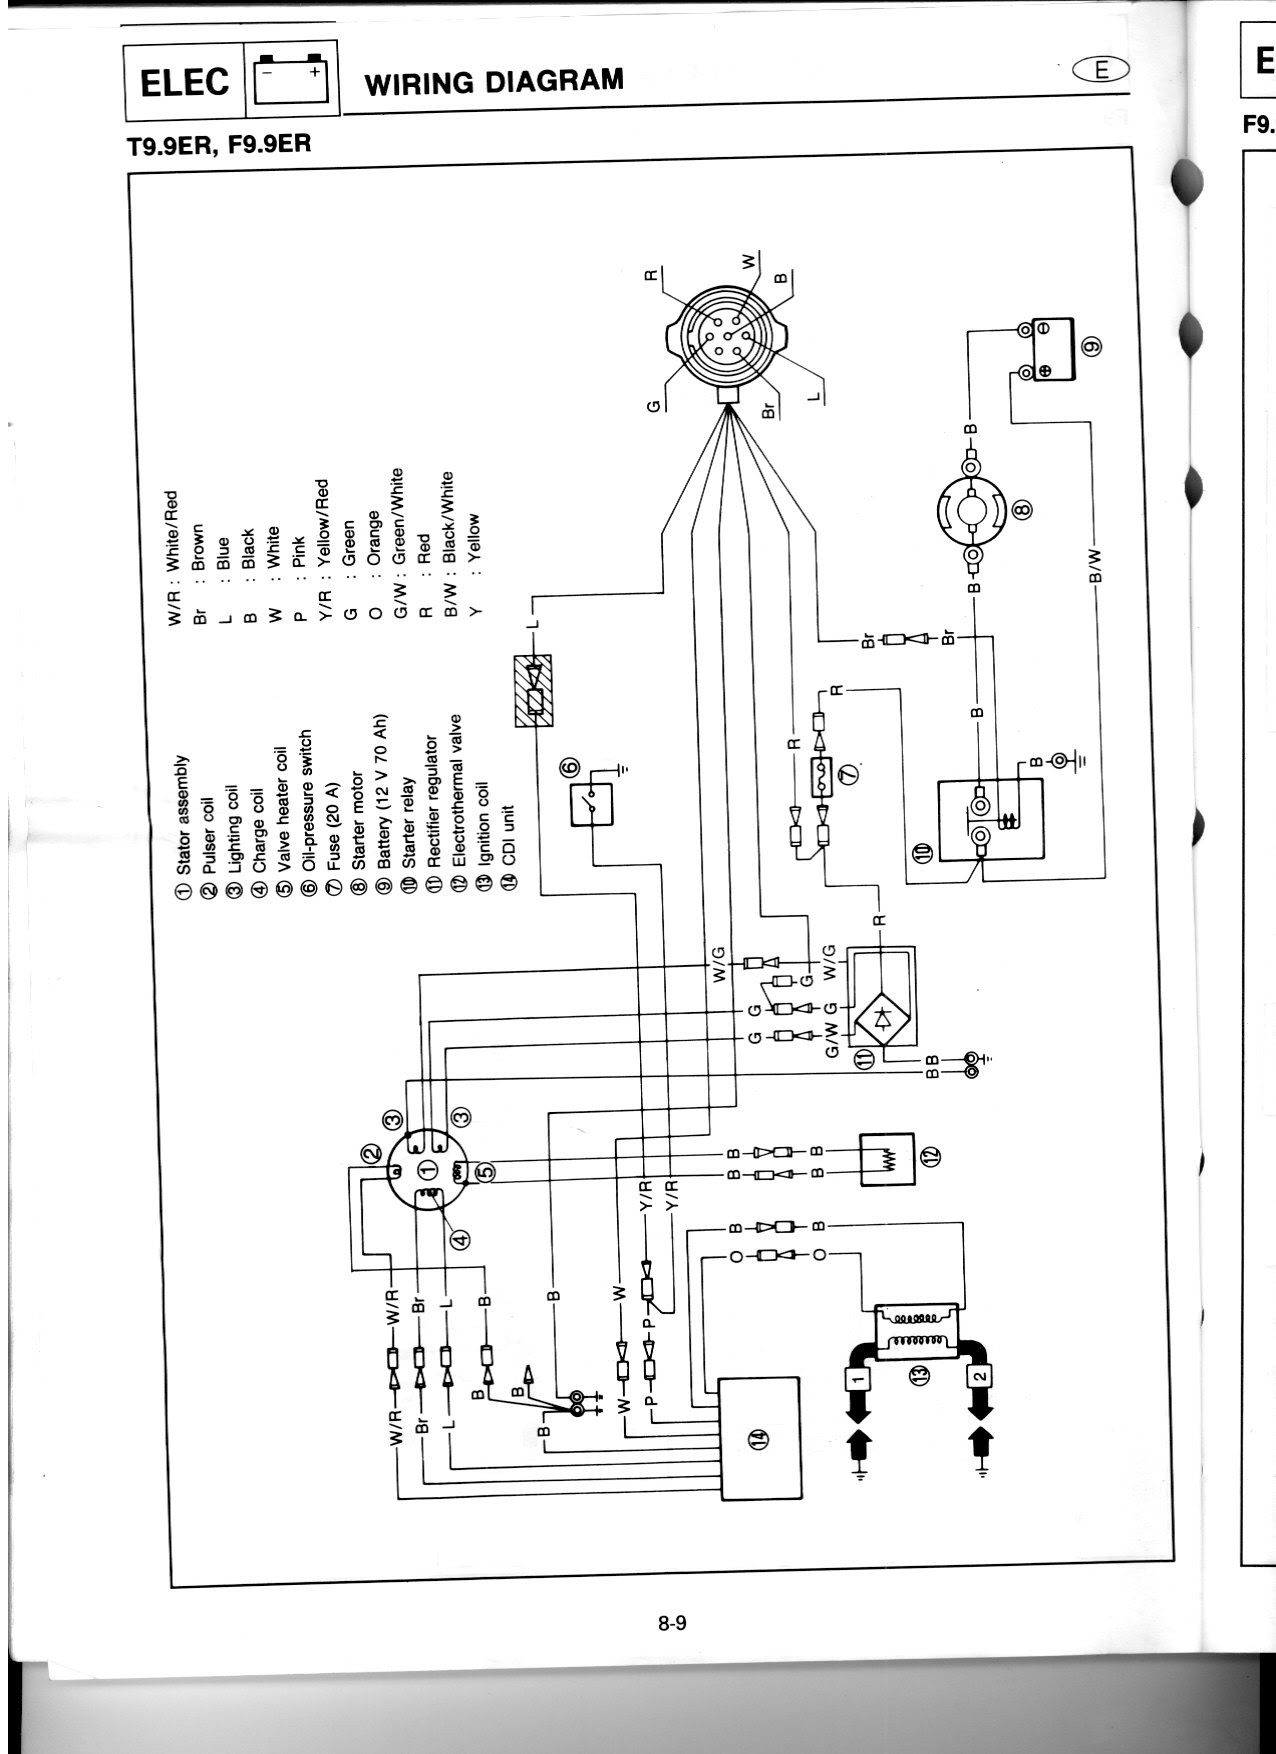 Yamaha G22 Golf Cart Wiring Diagram